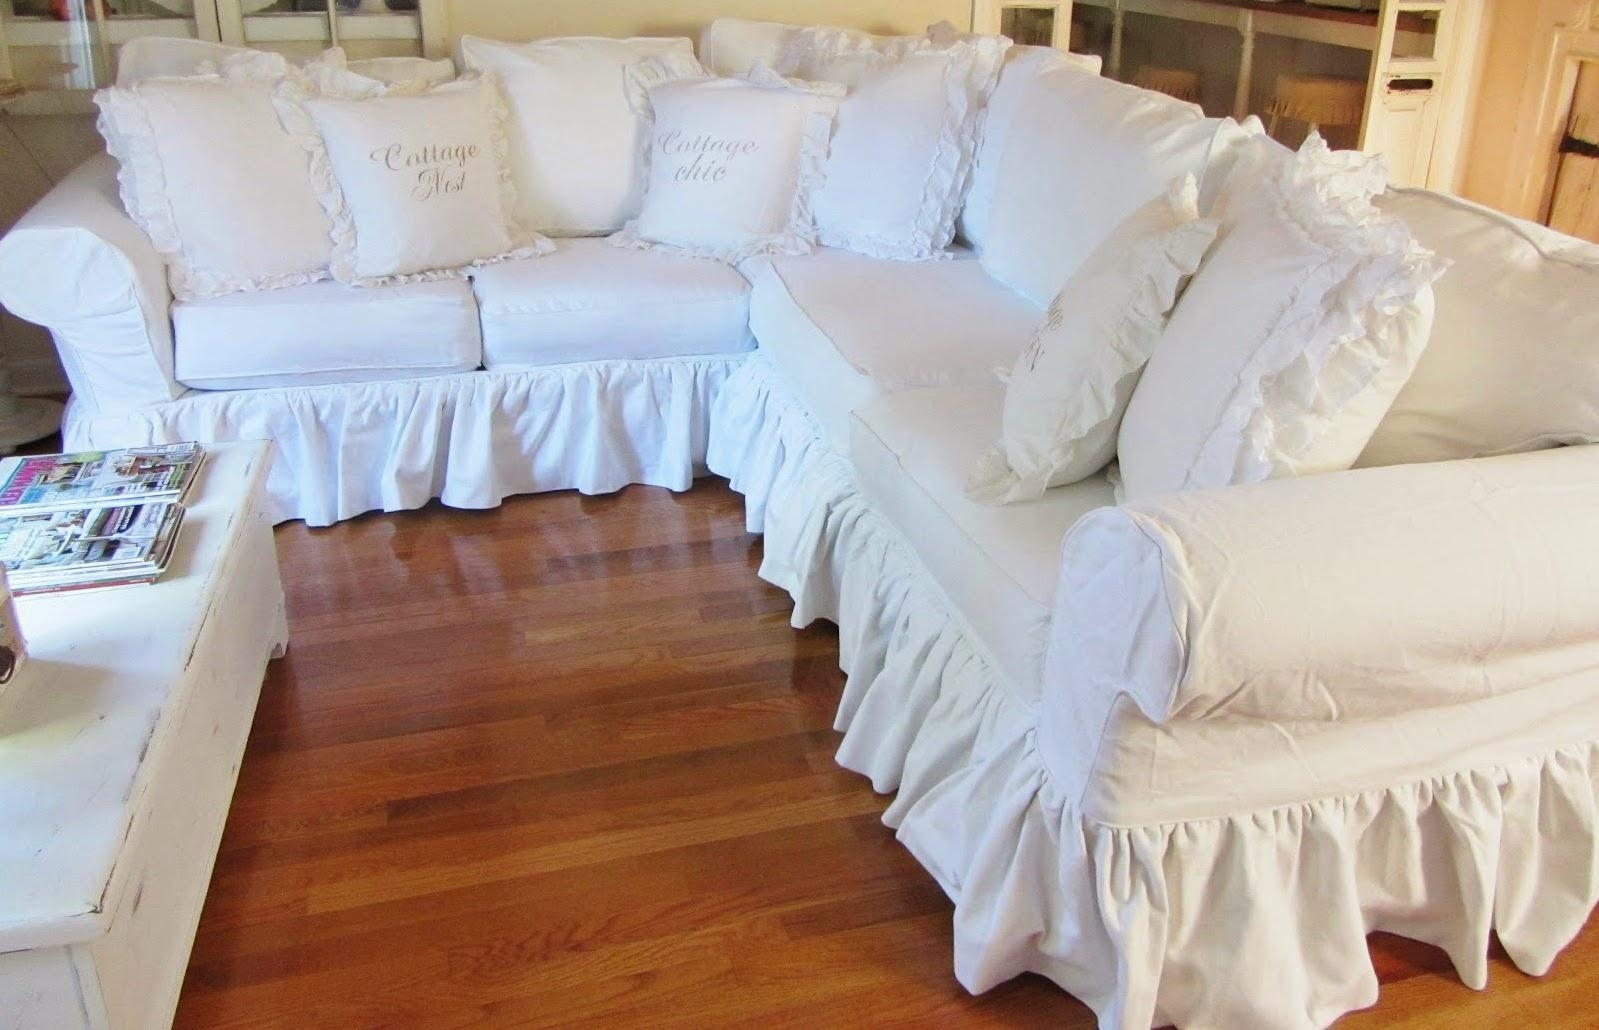 Junk Chic Cottage: White Sectional Sofa For Sale Inside White Sectional Sofa For Sale (View 17 of 21)